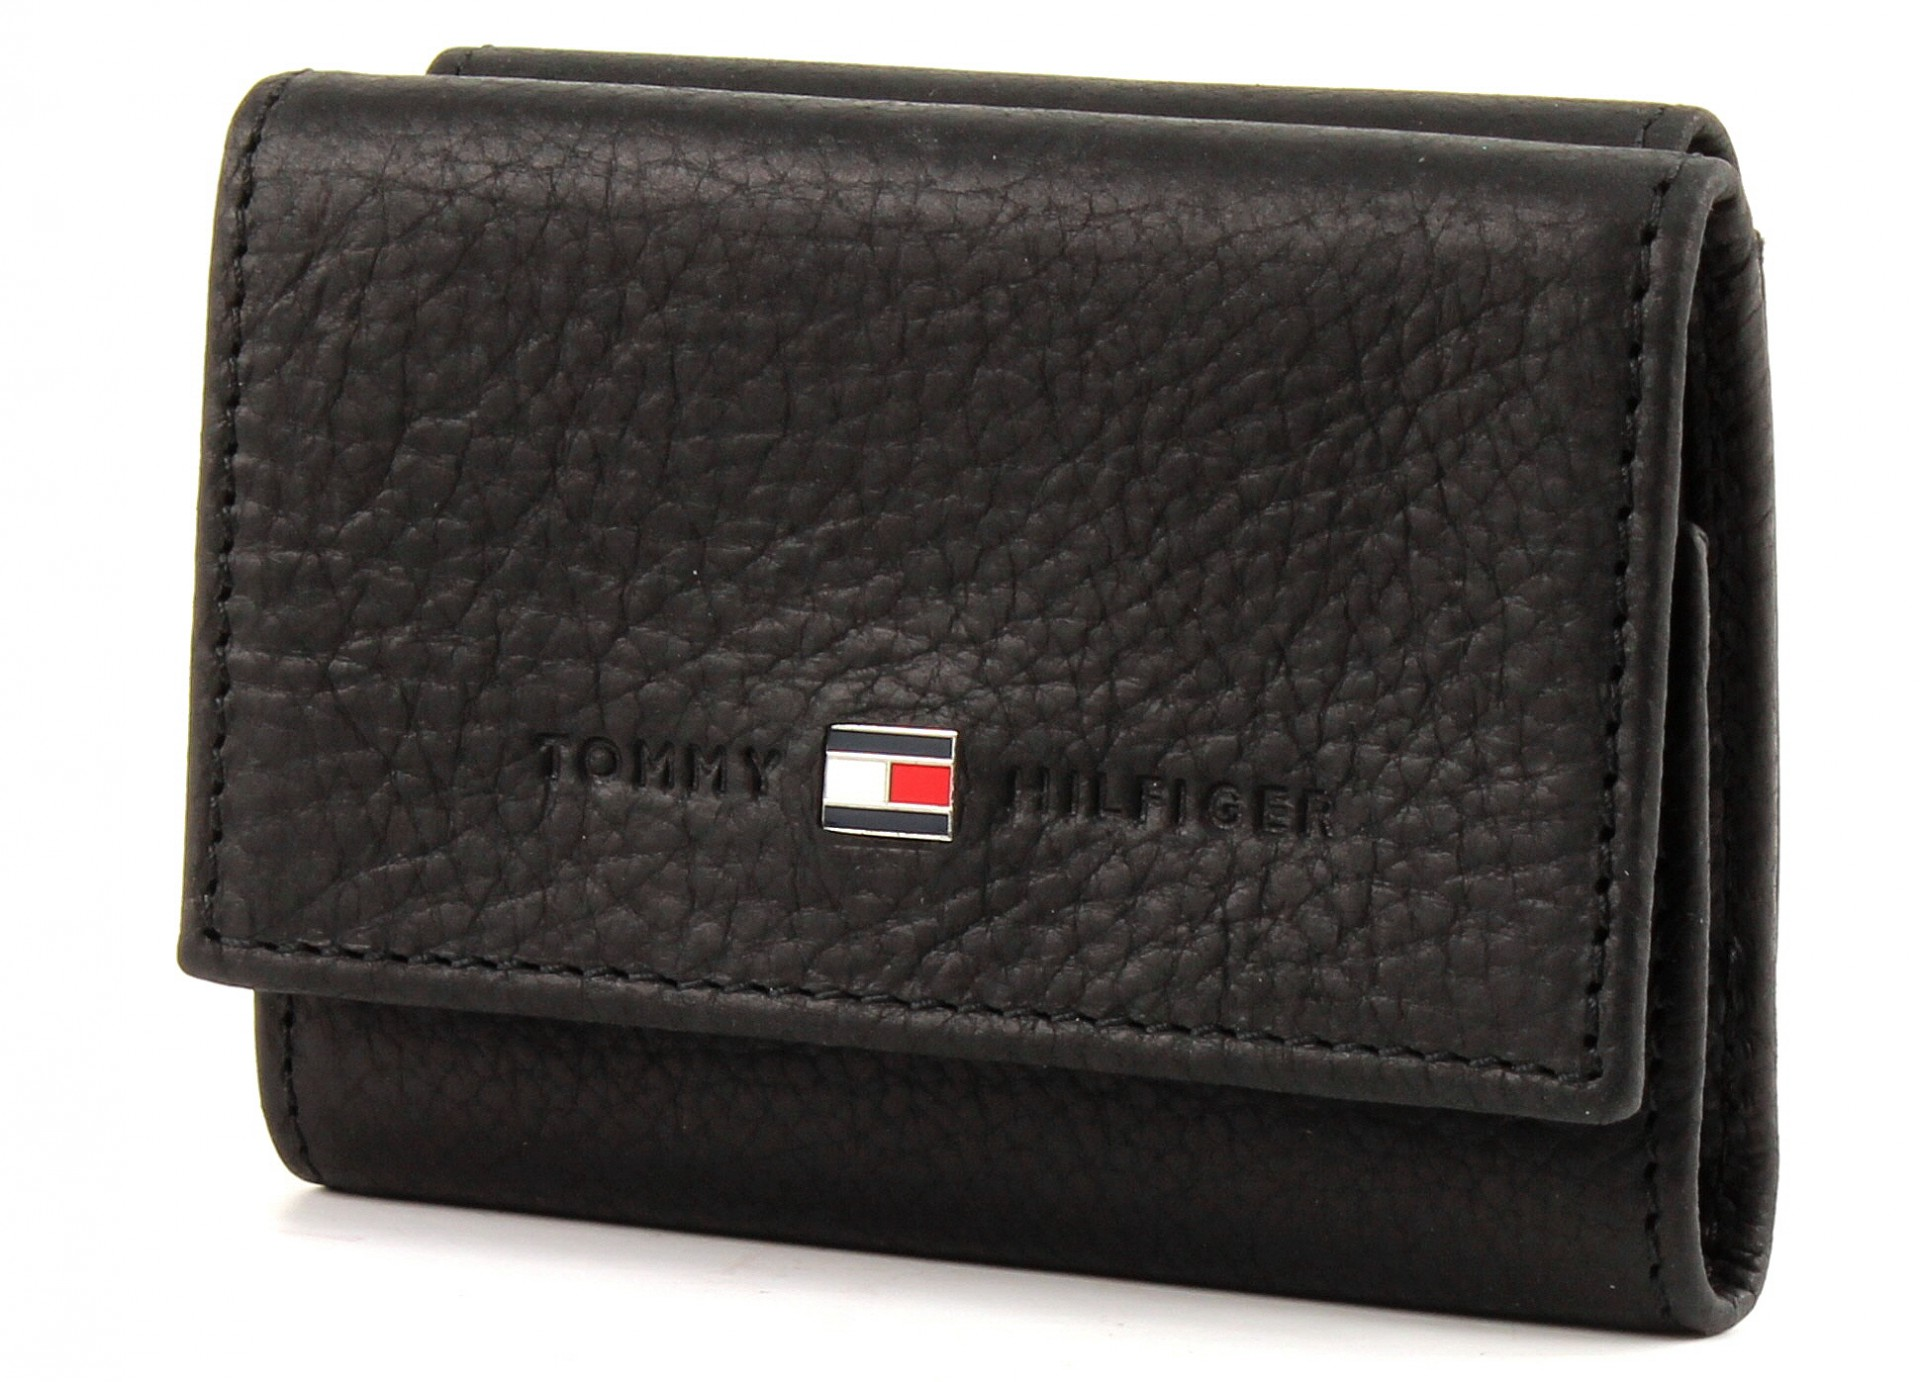 tommy hilfiger johnson mini flap wallet geldb rse portemonnaie schwarz neu ebay. Black Bedroom Furniture Sets. Home Design Ideas